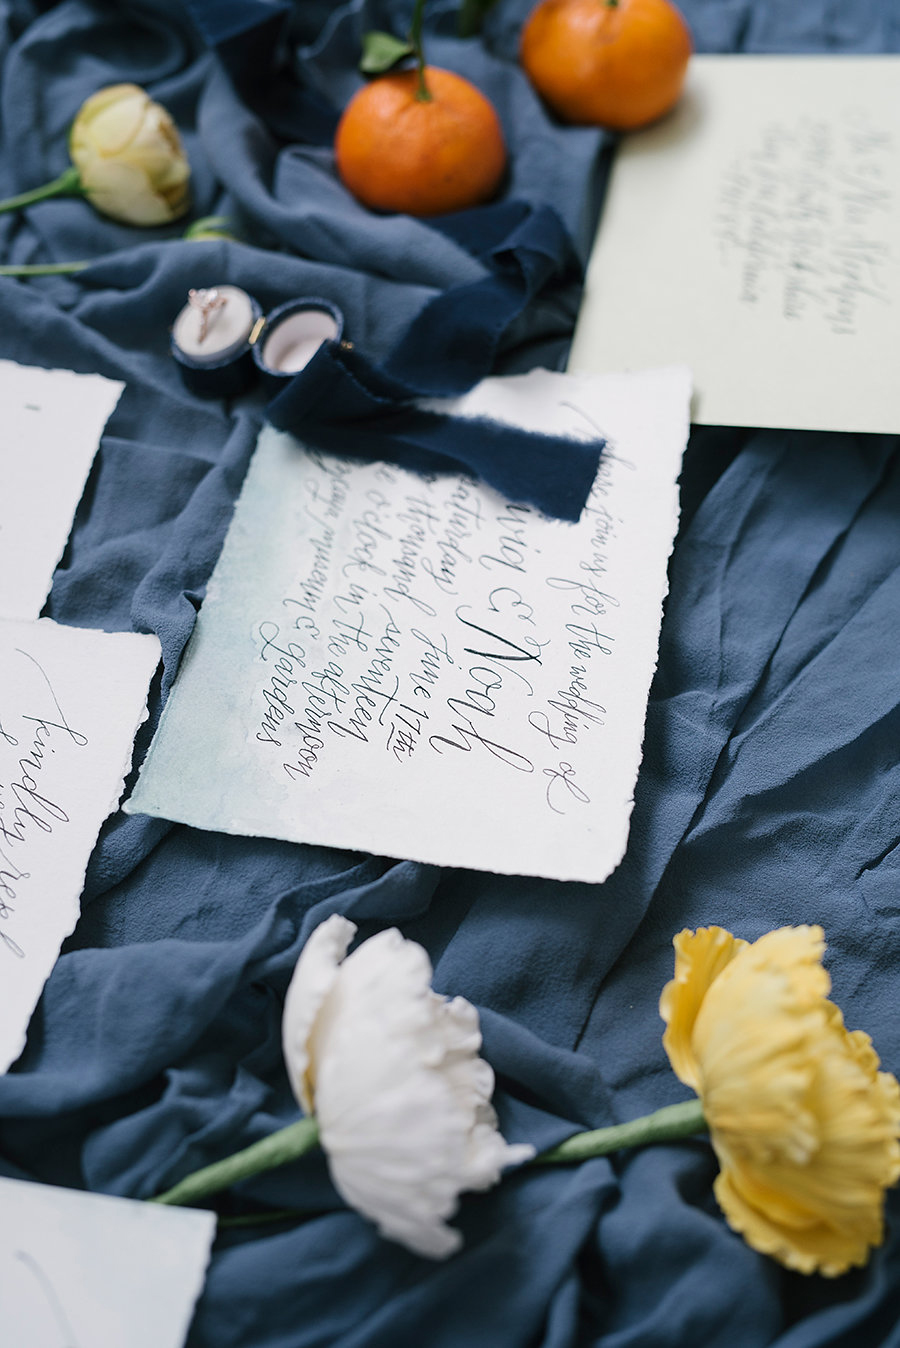 elegant wedding stationery - photo by Ashlee Brooke Photography http://ruffledblog.com/summertime-citrus-wedding-inspiration